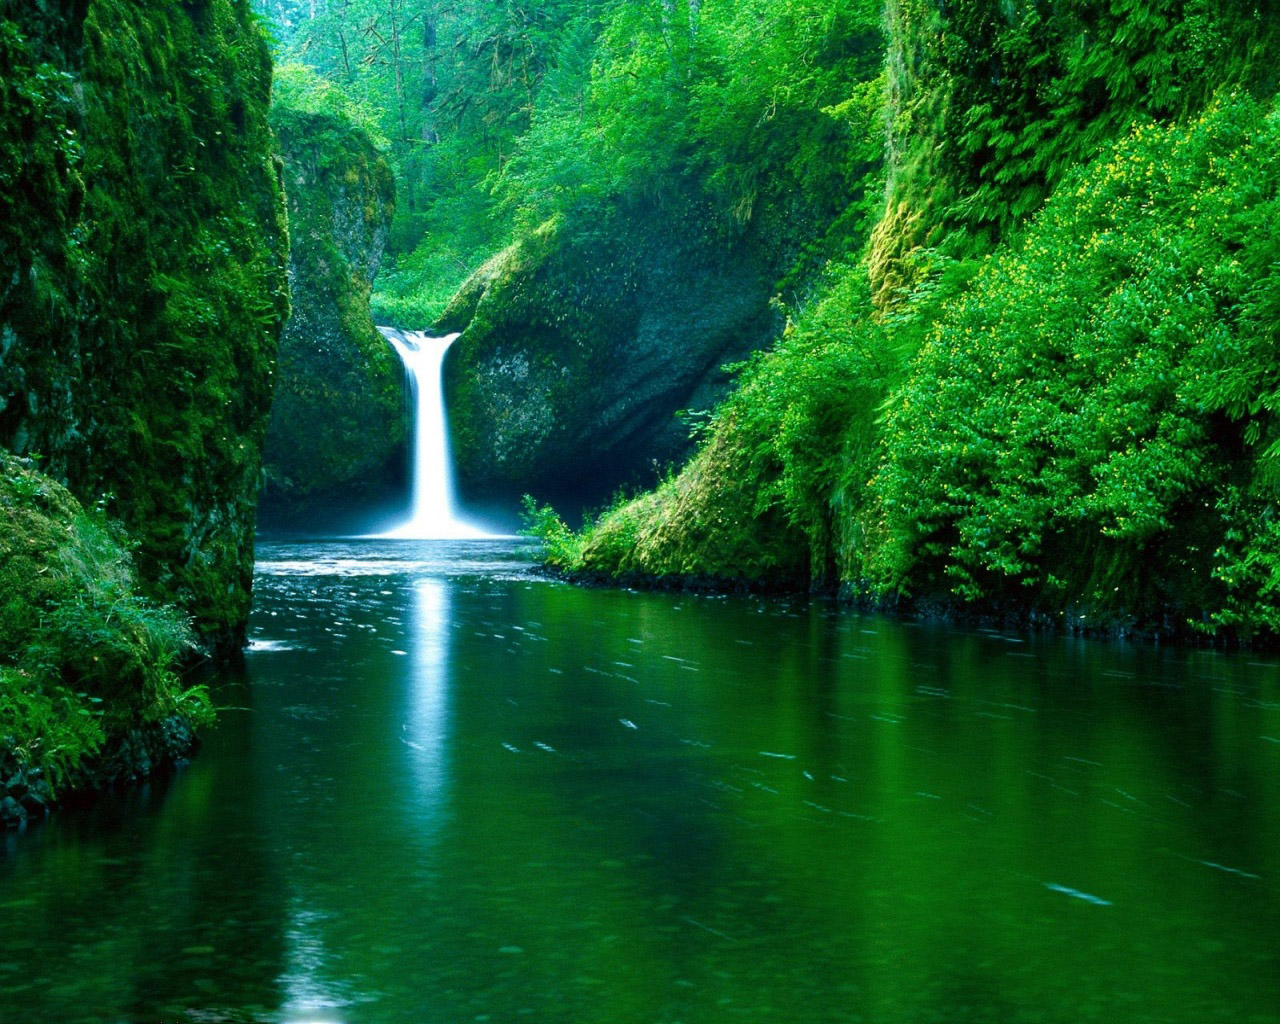 Green Nature Eco Friendly Wallpapers Stunningmesh